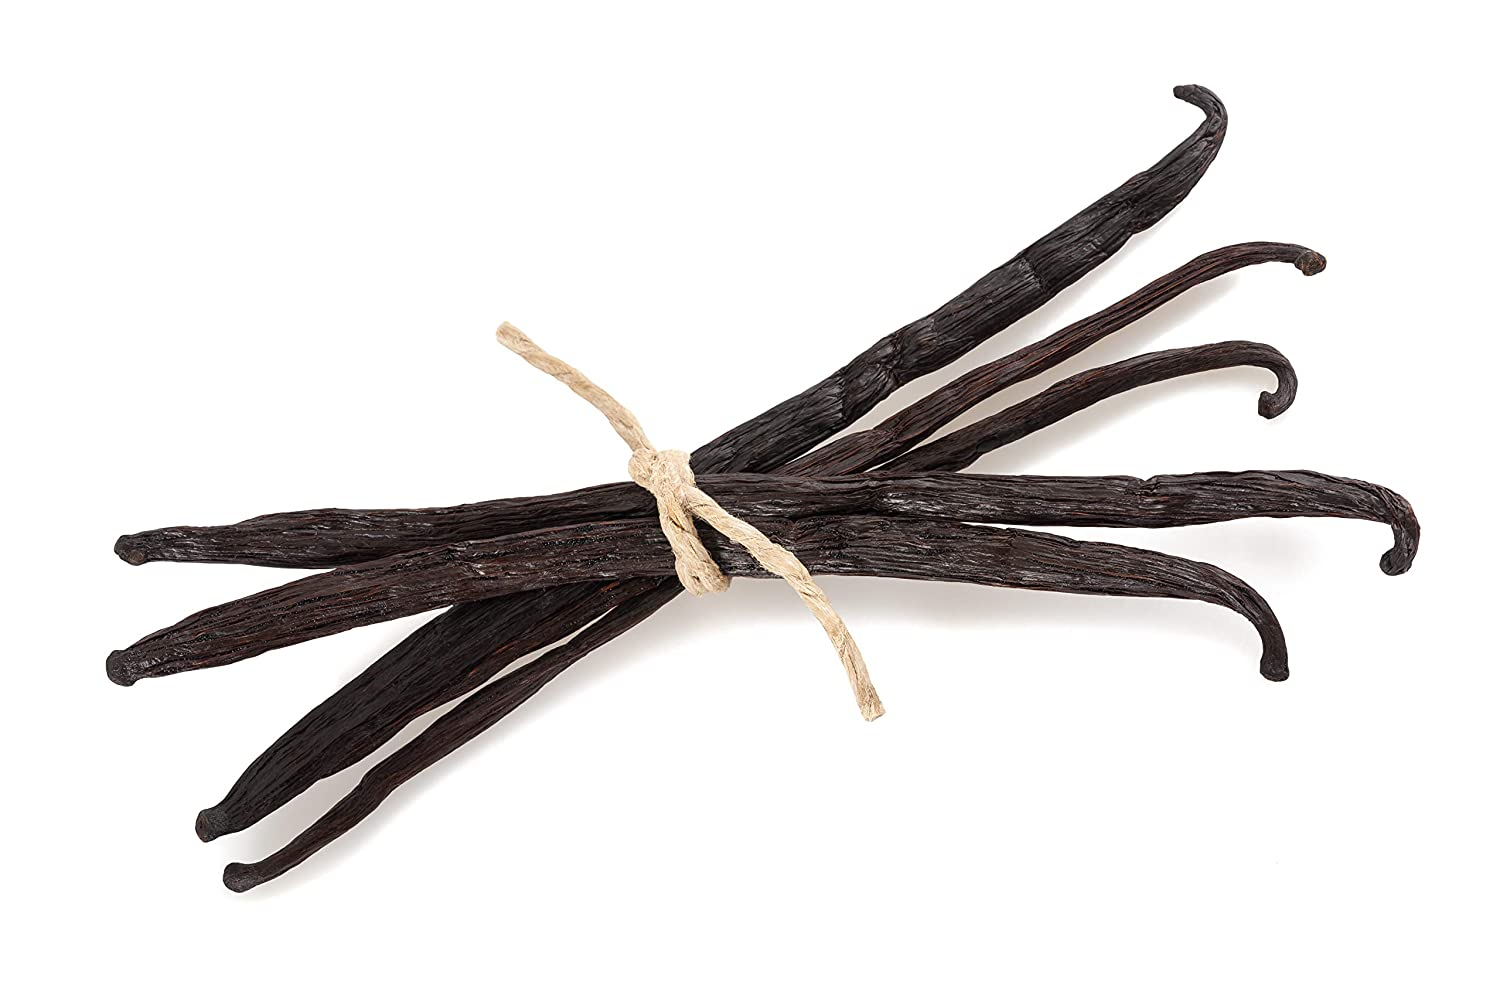 5 Madagascar Vanilla Beans - Whole Extract Grade B Pods for Baking, Homemade Extract, Brewing, Coffee, Cooking